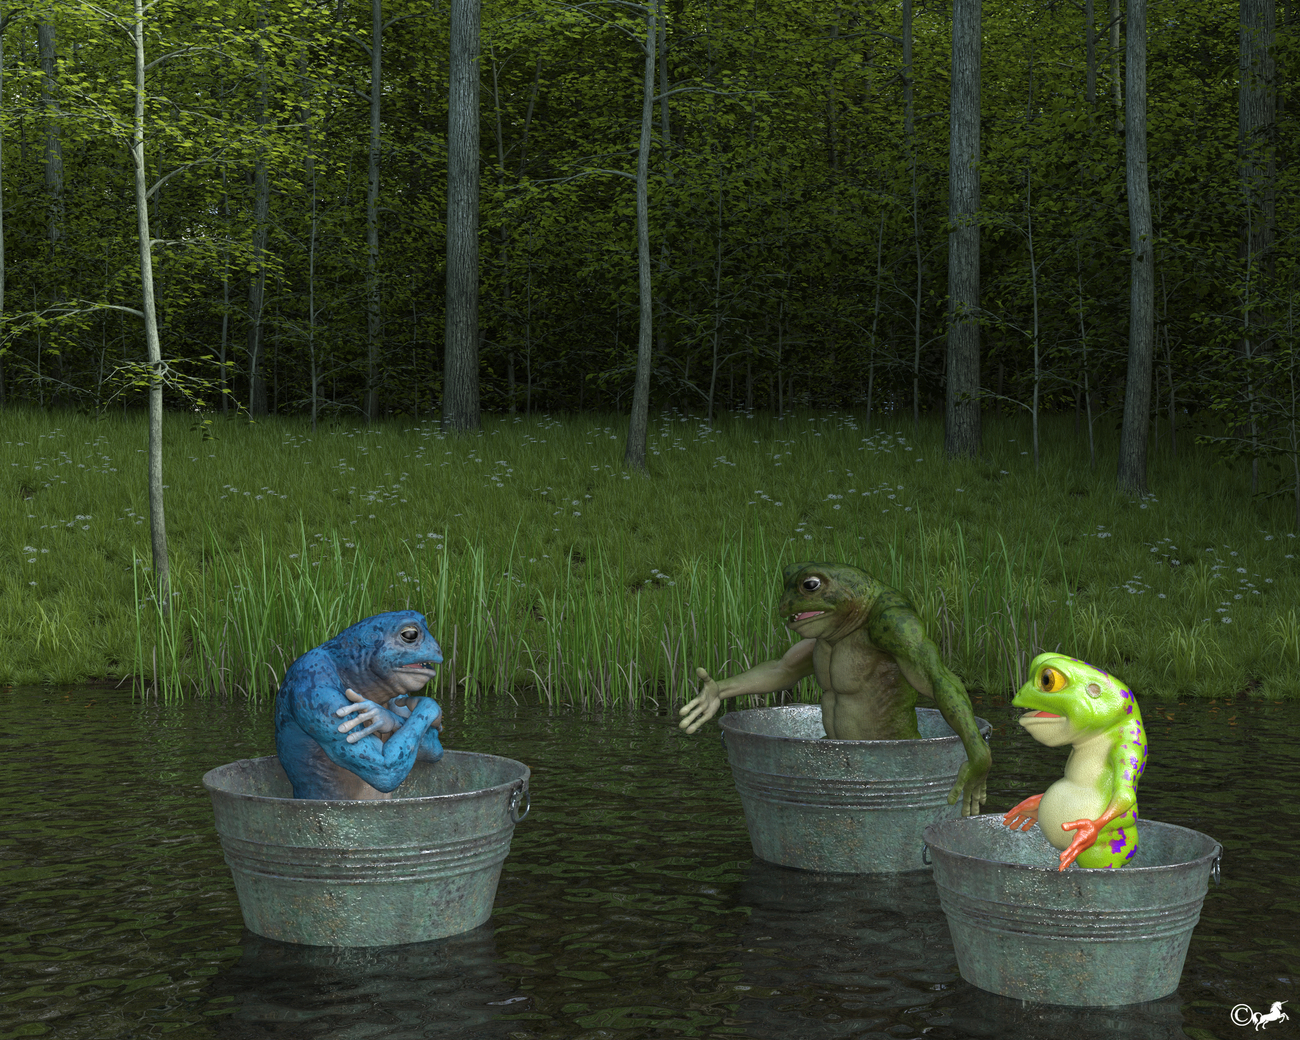 DAZ 917 or Frog race by miwi